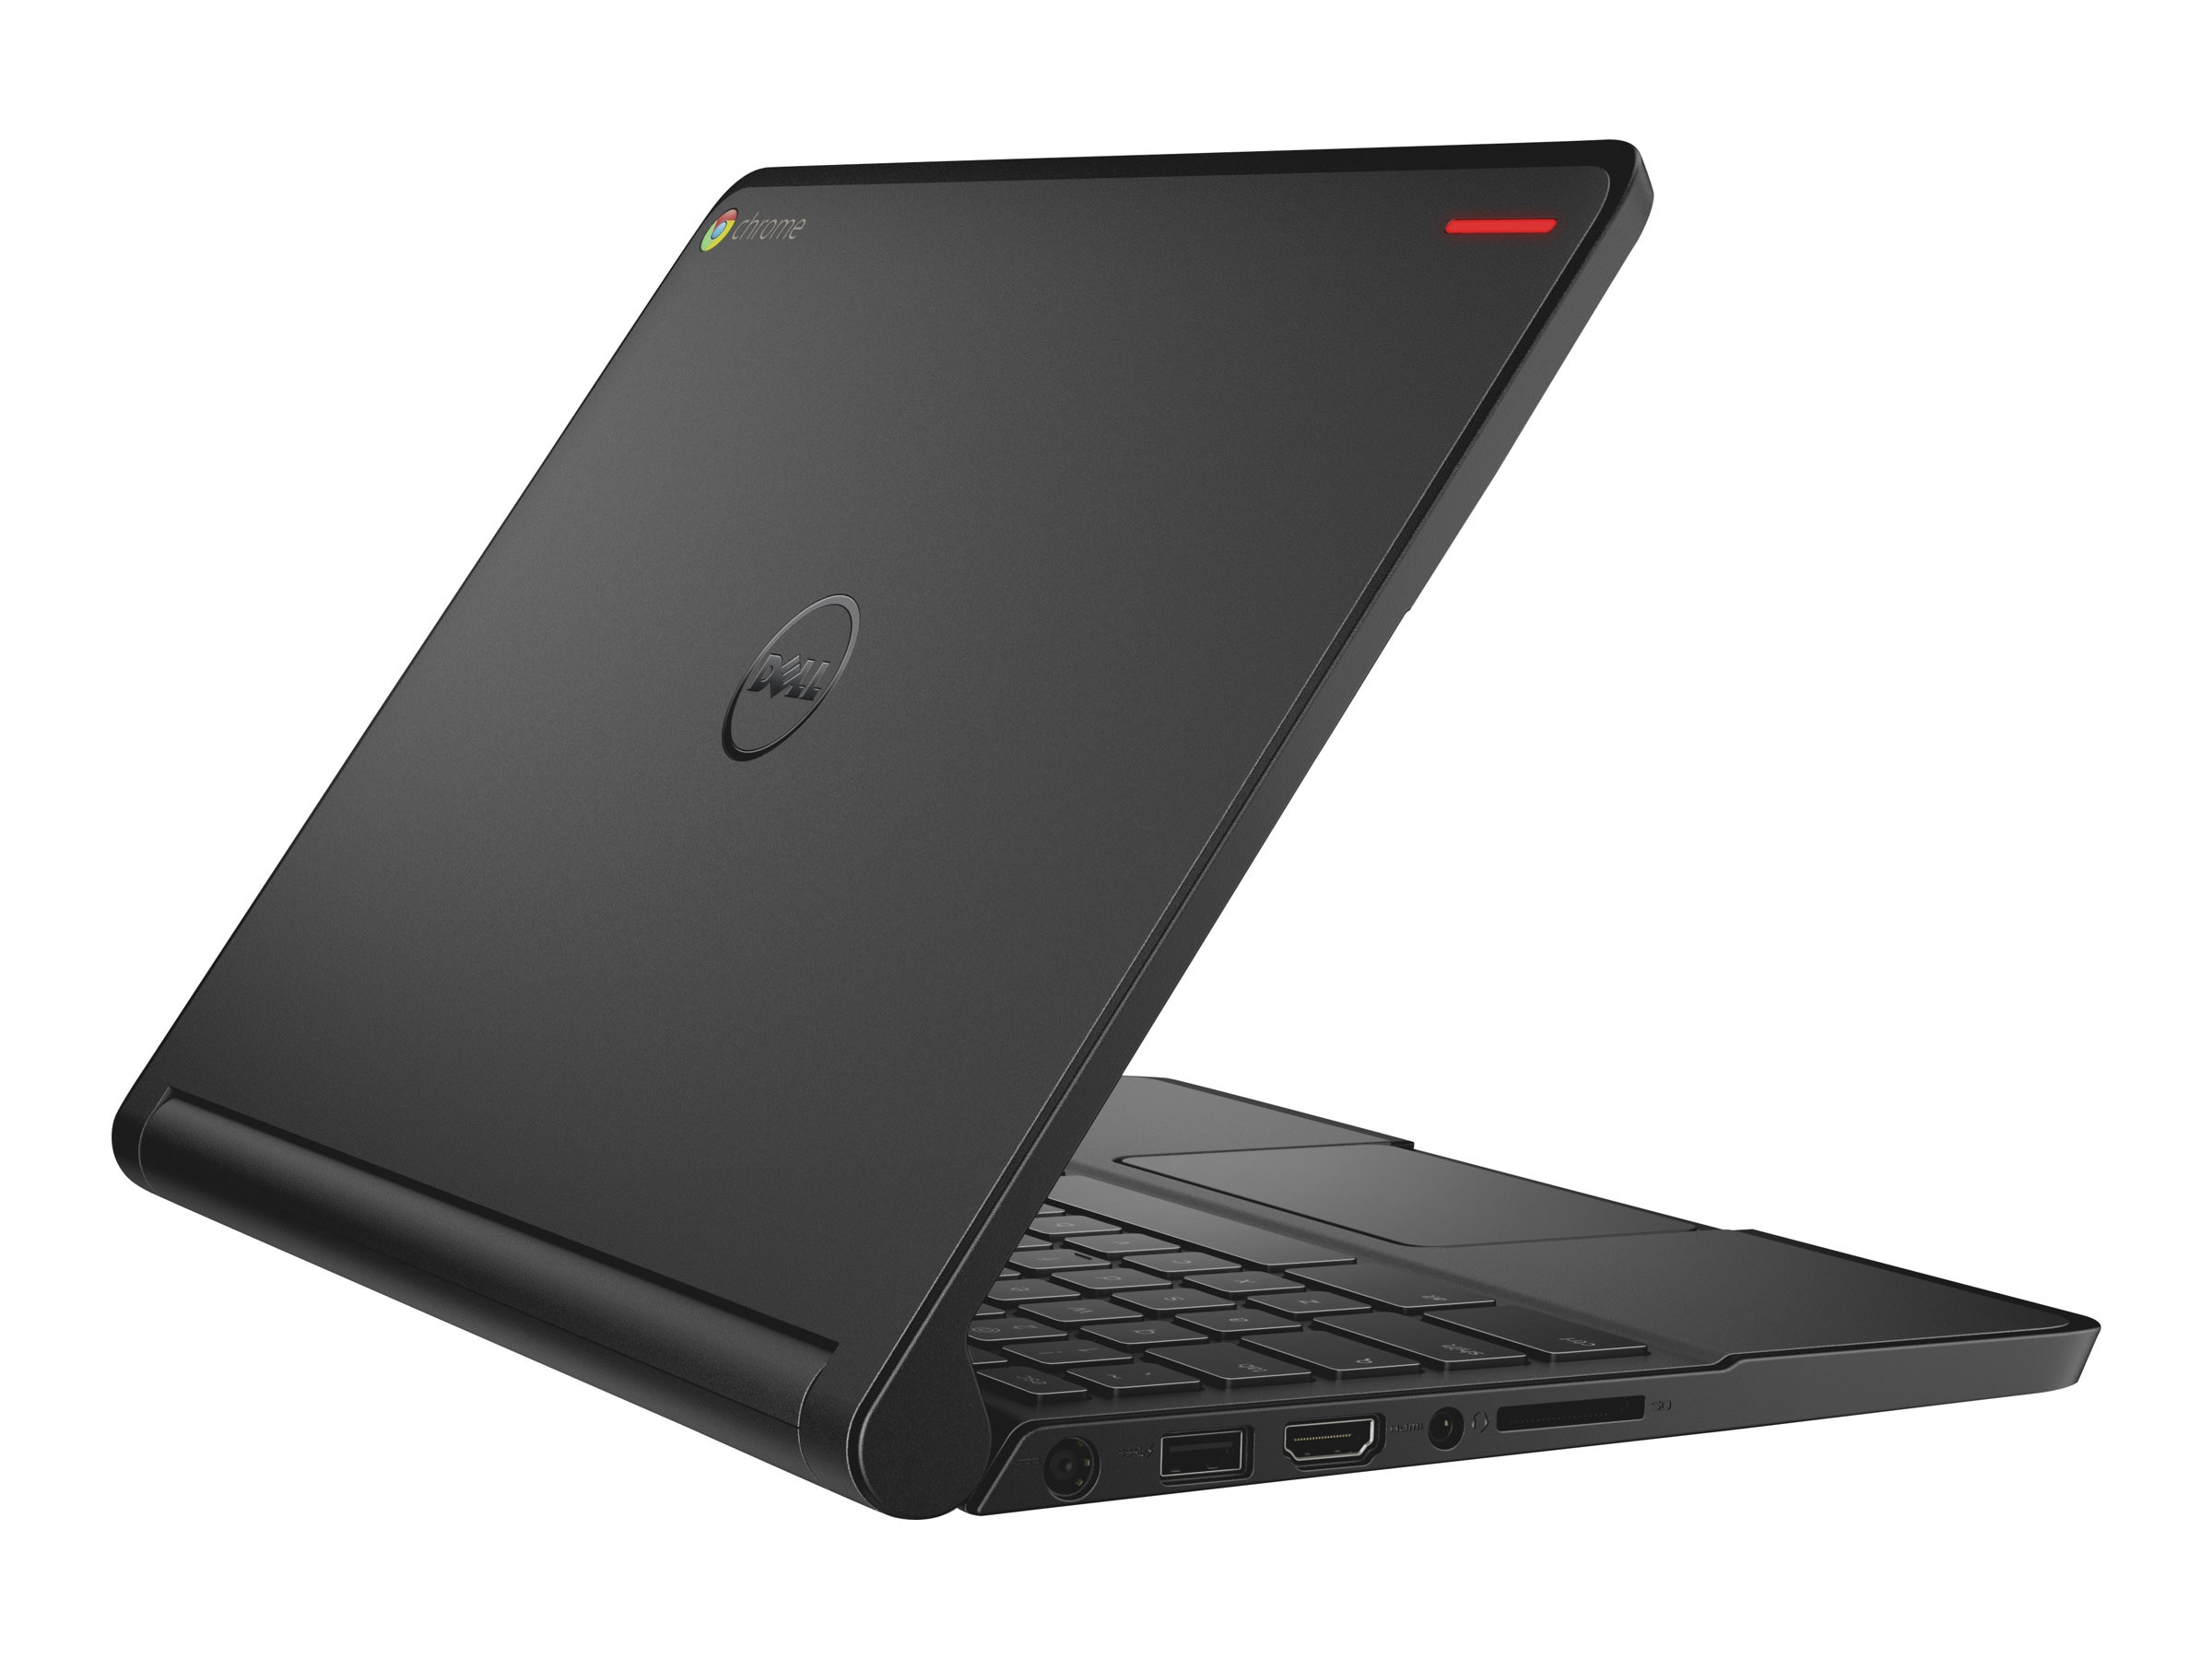 Dell XDGJH Image 7